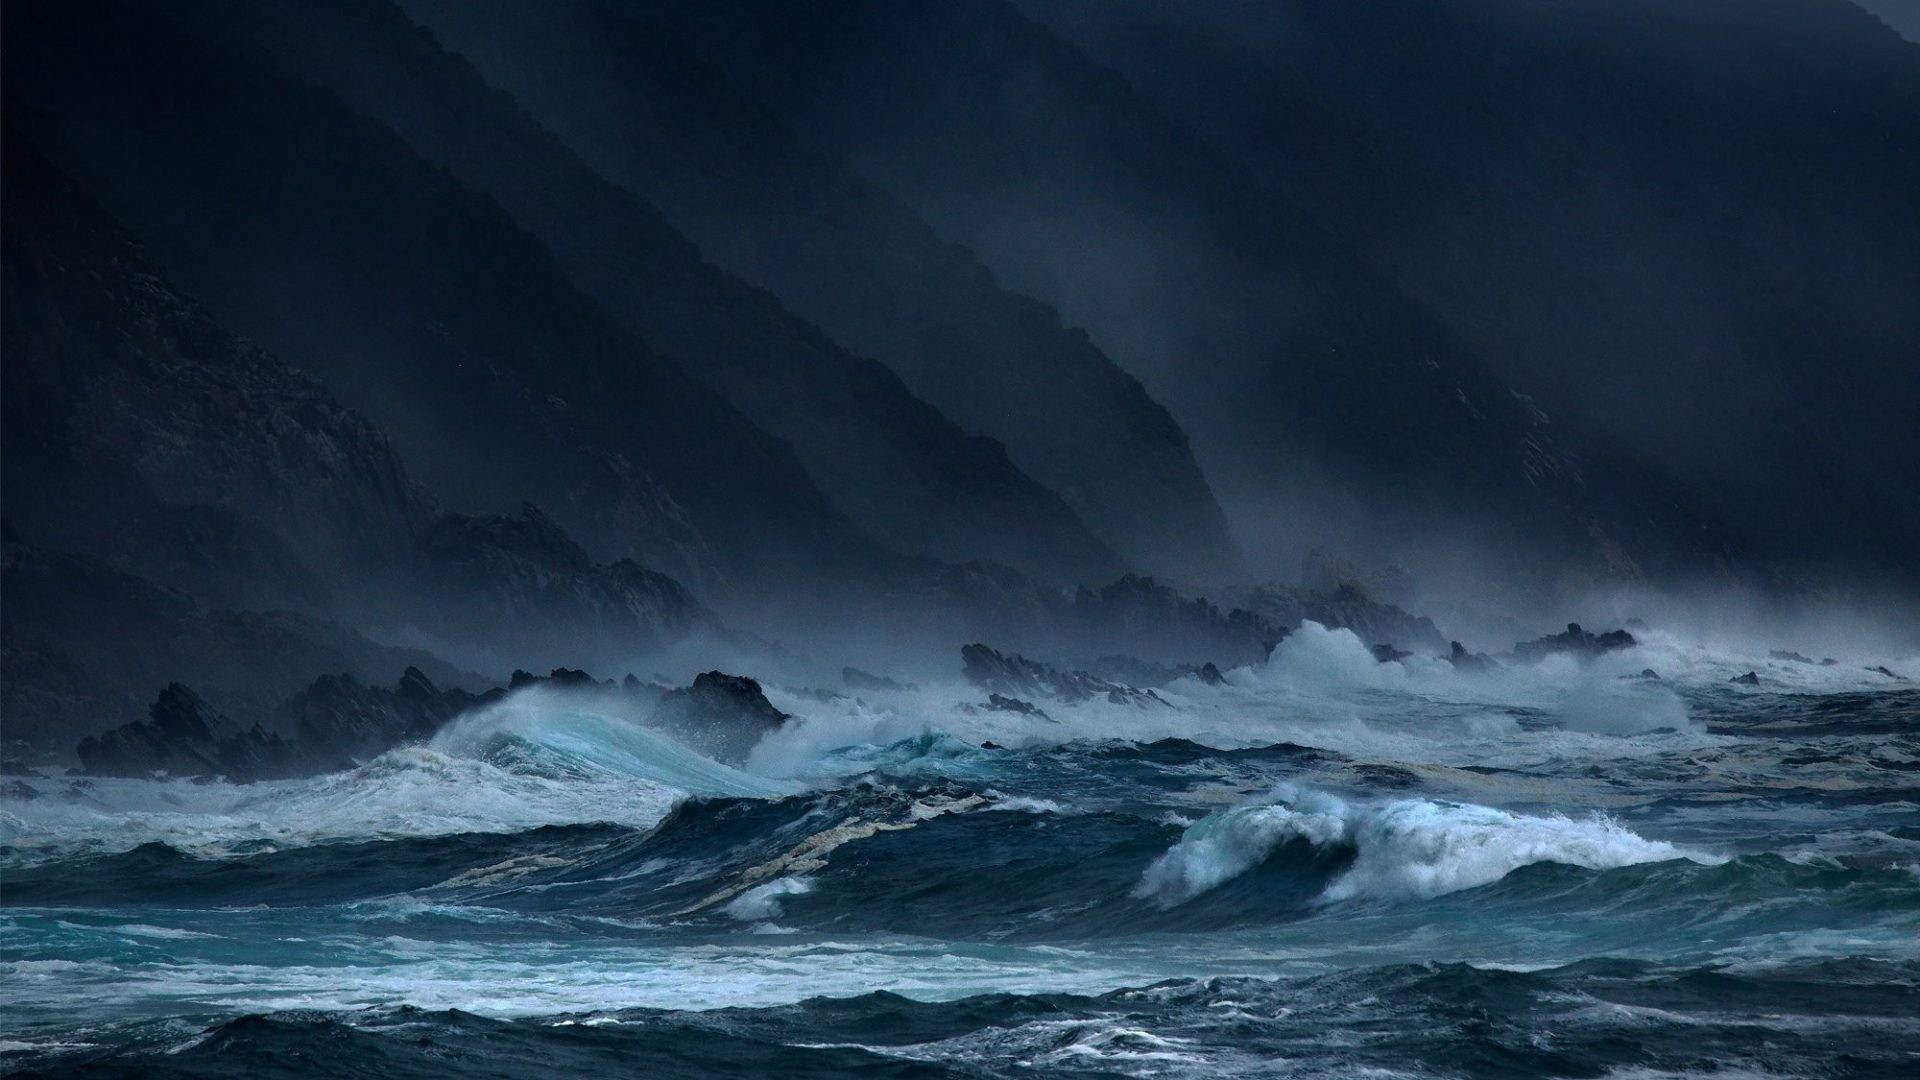 1920x1080 Sky Clouds Sea Rain Waves Ocean Weather Nature Storm Hd Download - 2000x1333